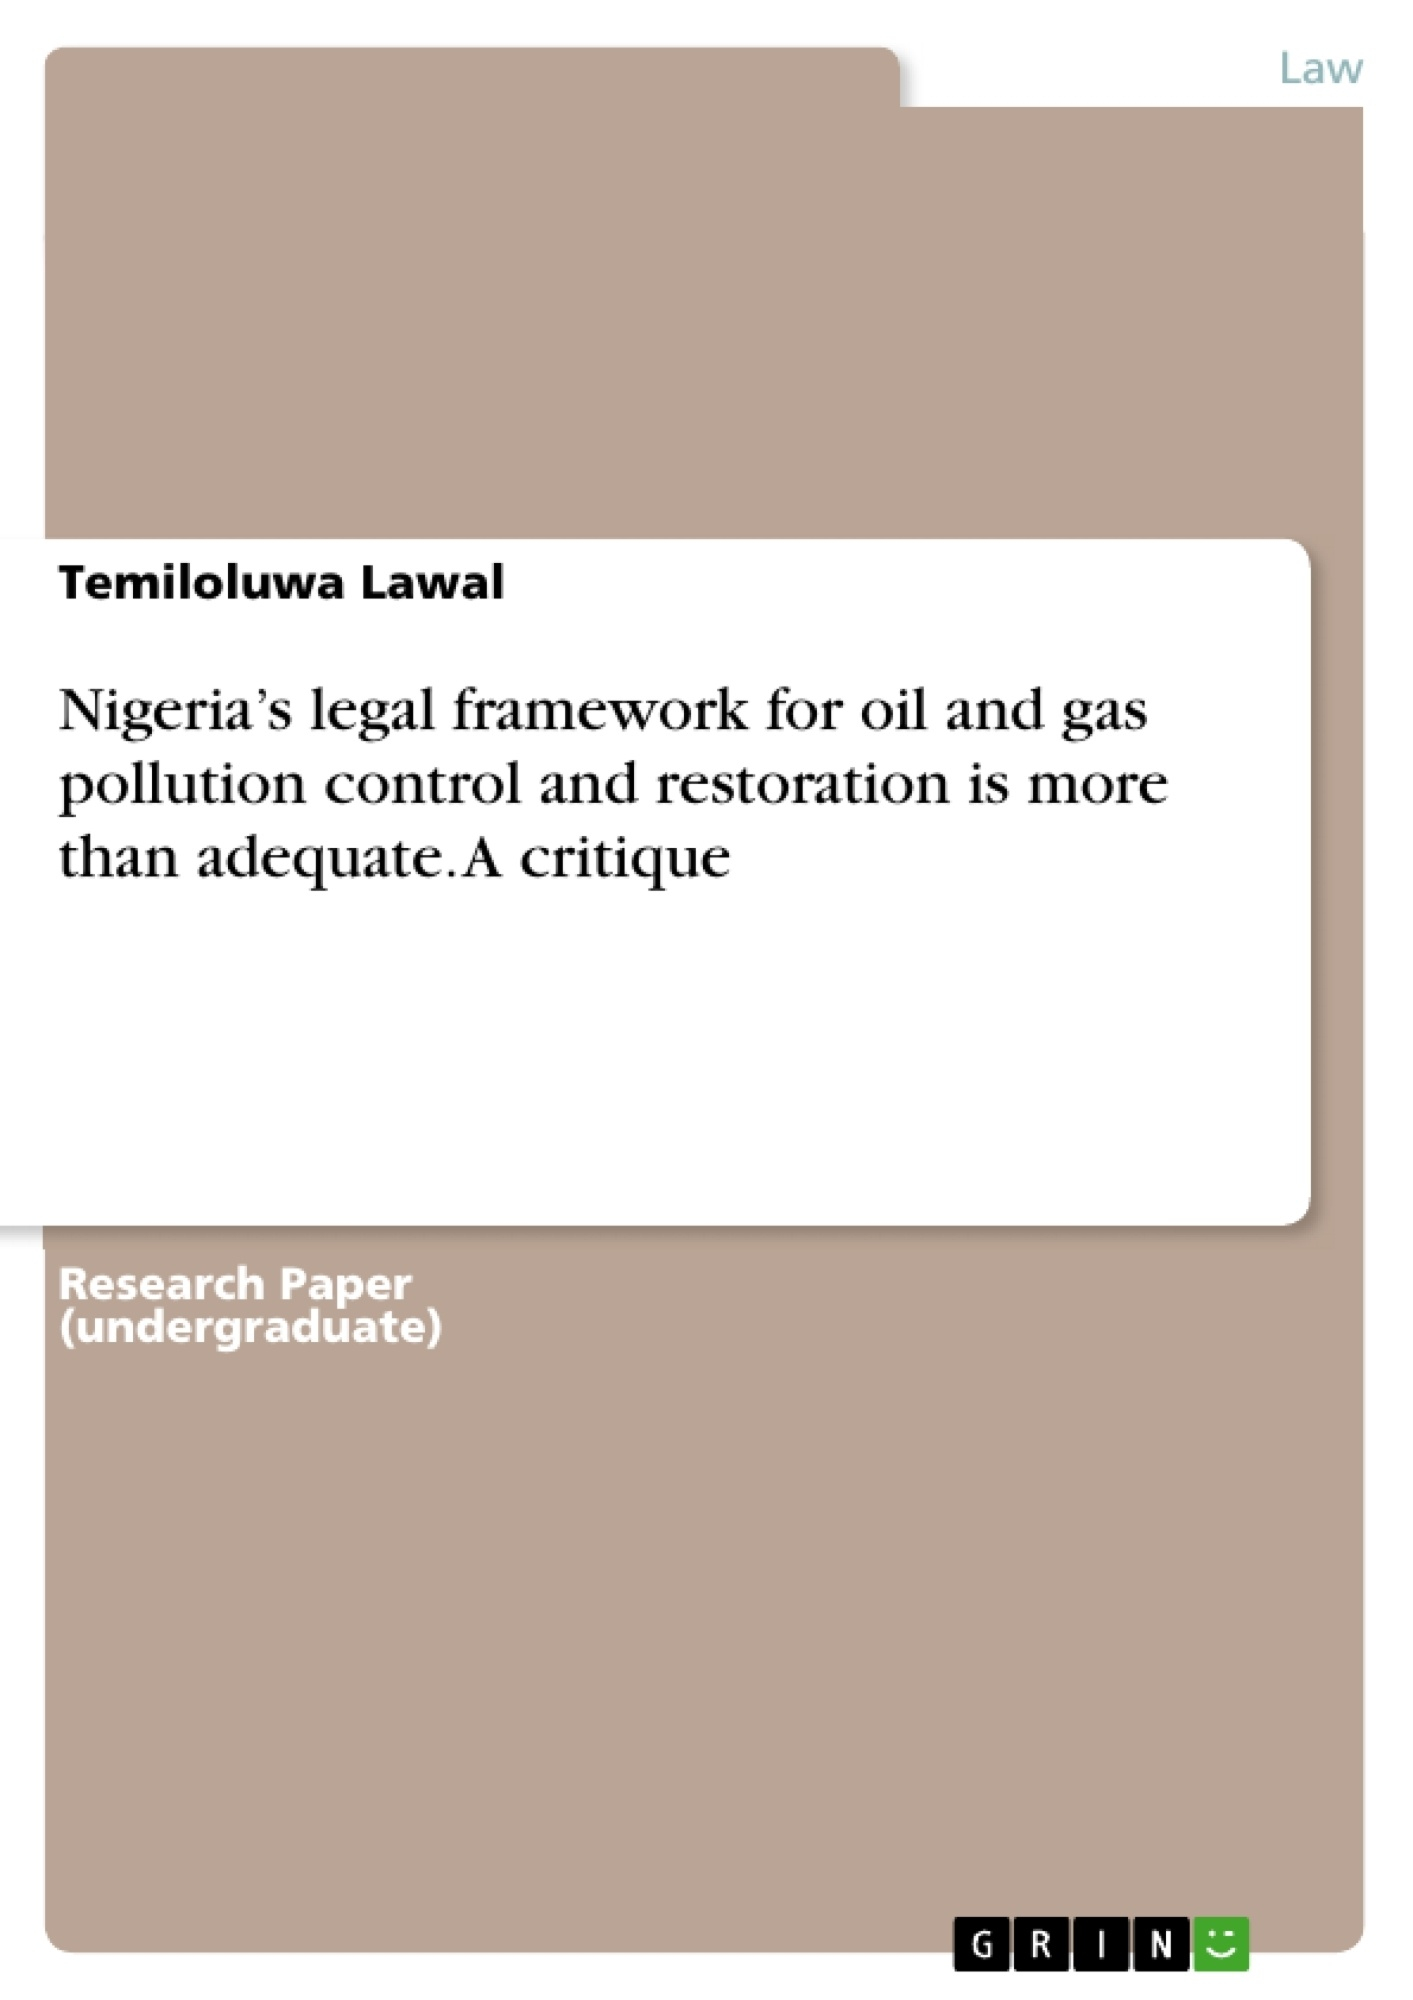 Title: Nigeria's legal framework for oil and gas pollution control and restoration is more than adequate. A critique